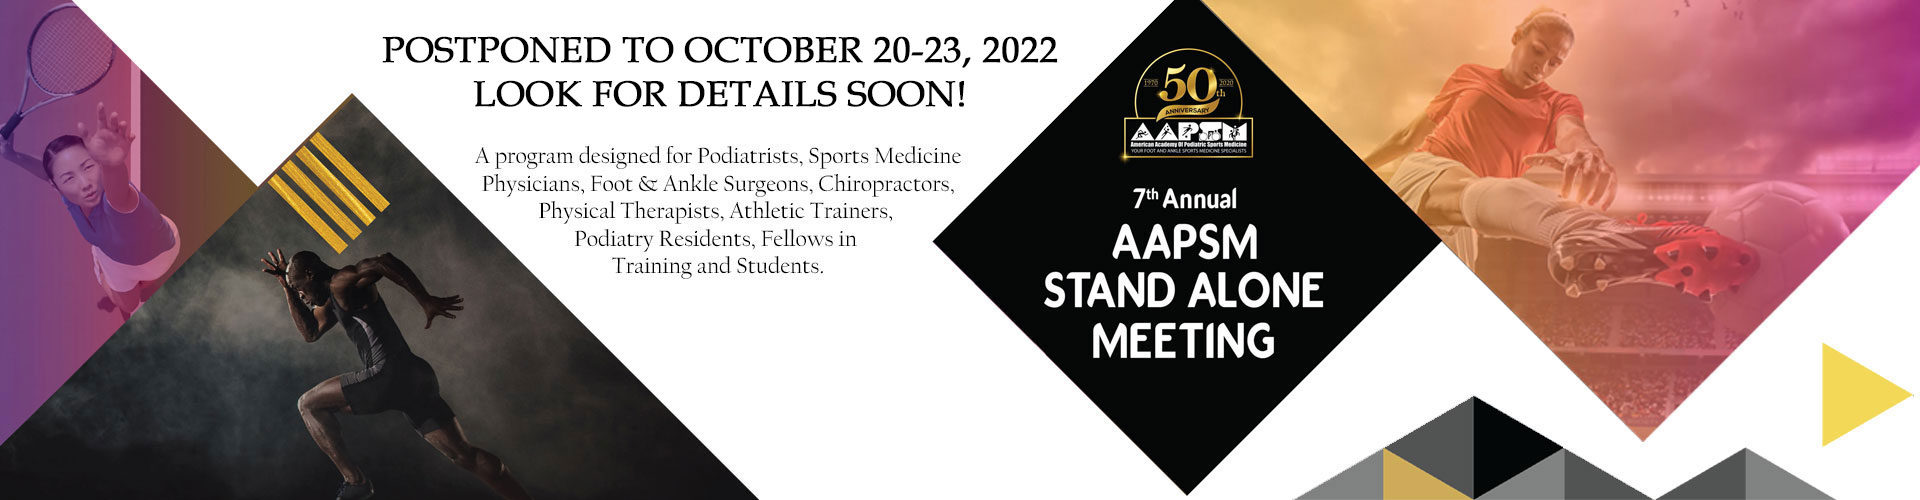 2020 AAPSM Stand Alone Meeting